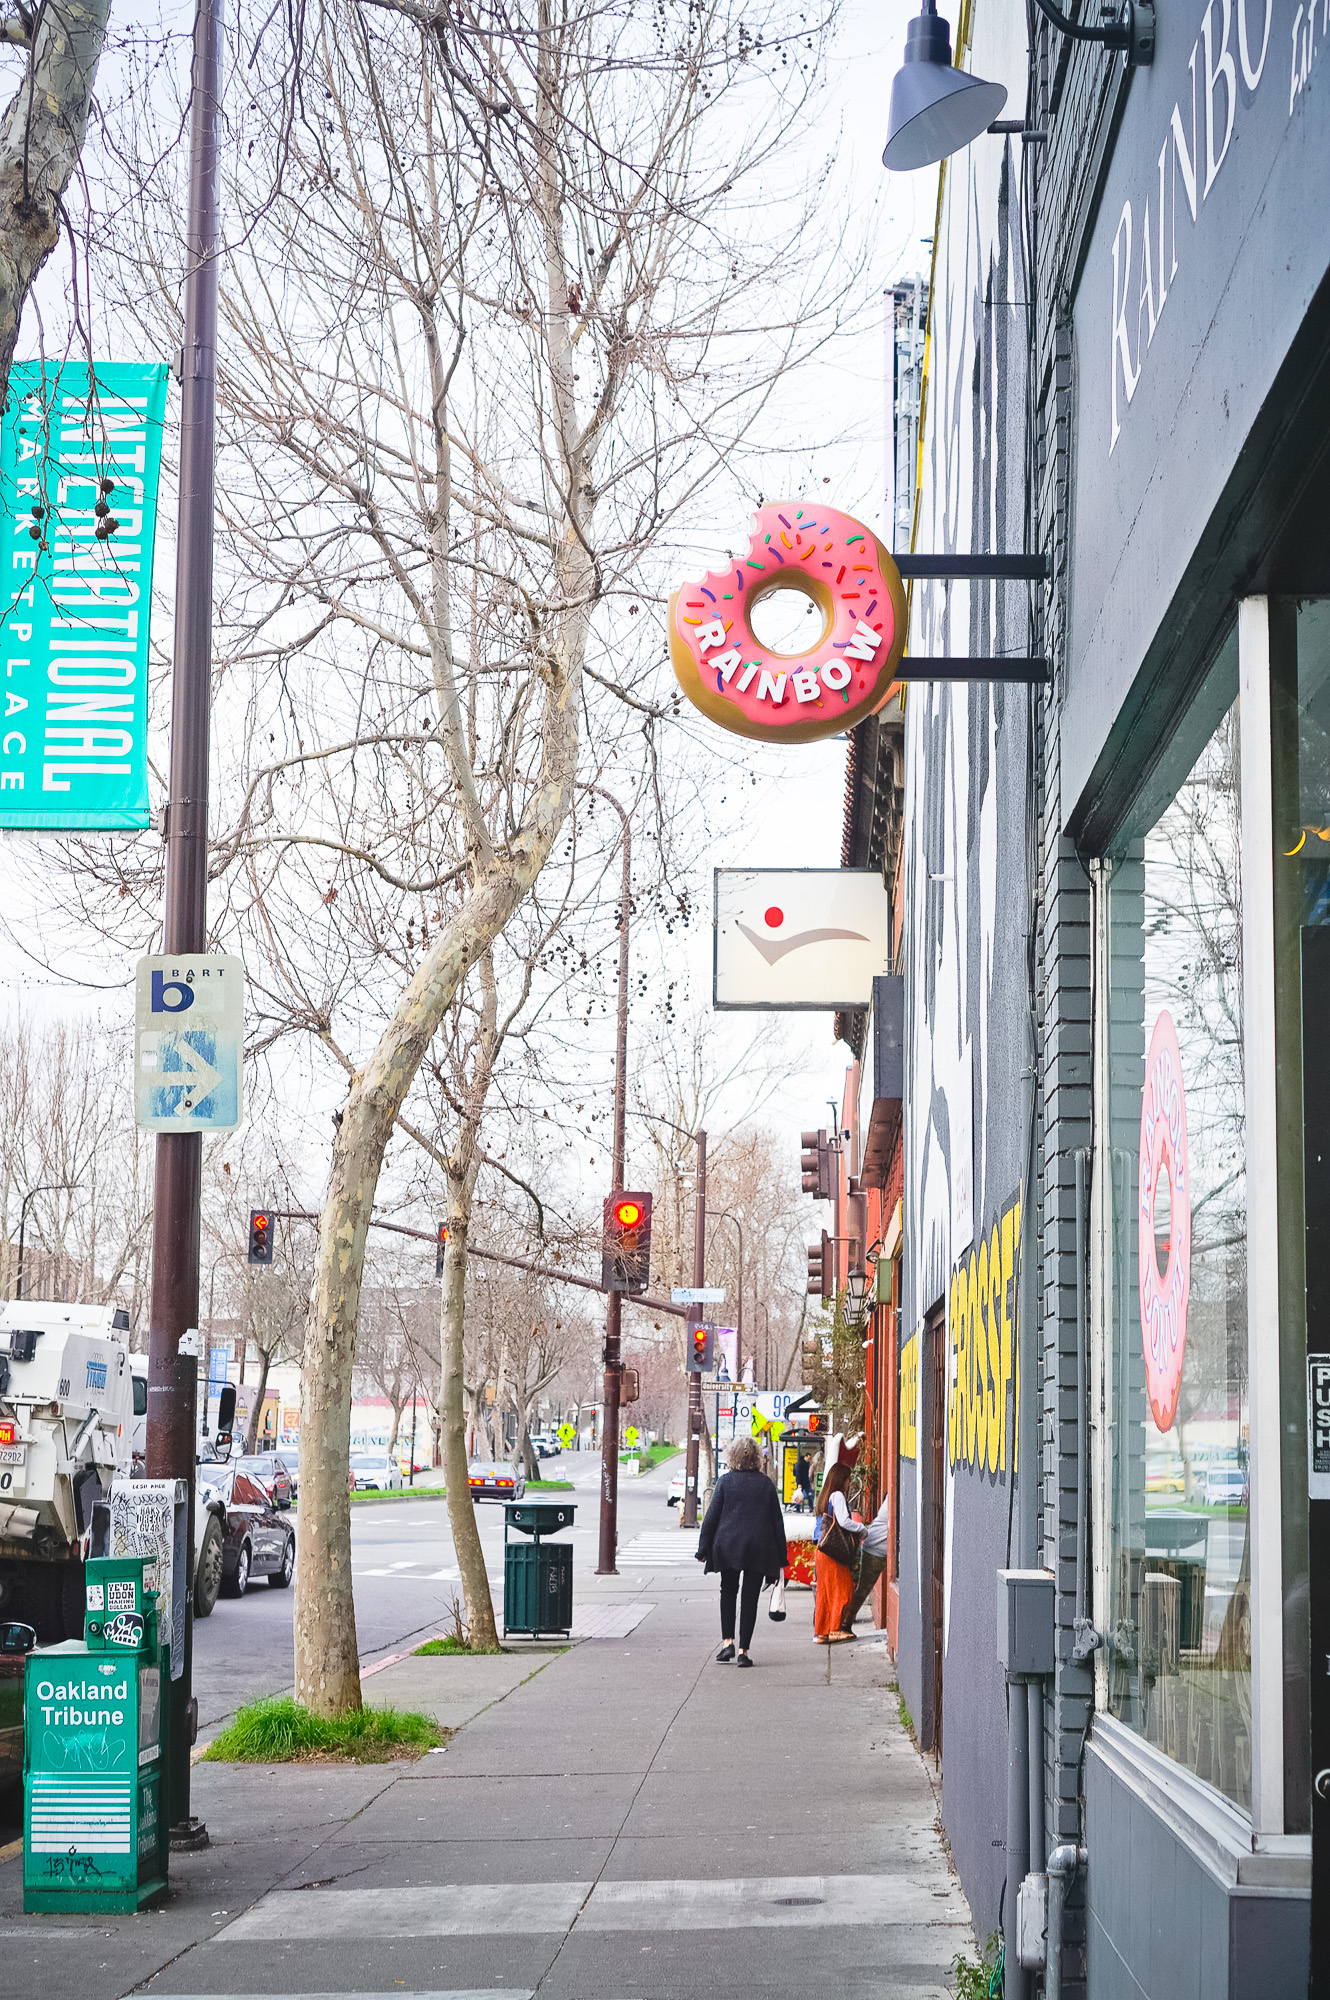 3D, pink-frosted, sculptural, sprinkle donut blade sign for Rainbow Donuts in Berkeley, CA